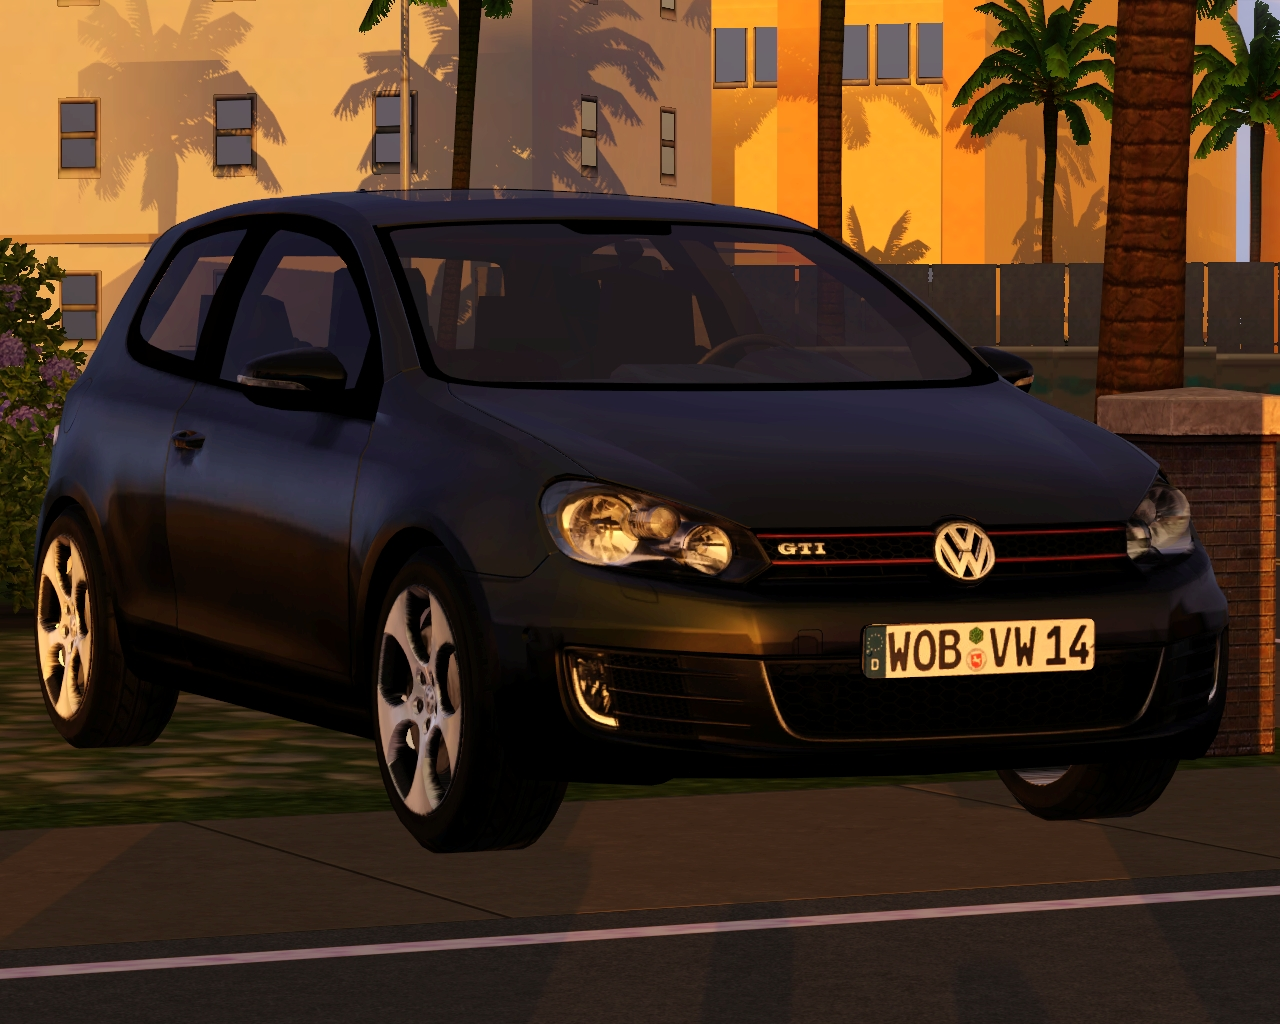 2011 Volkswagen GTI by Fresh-Prince